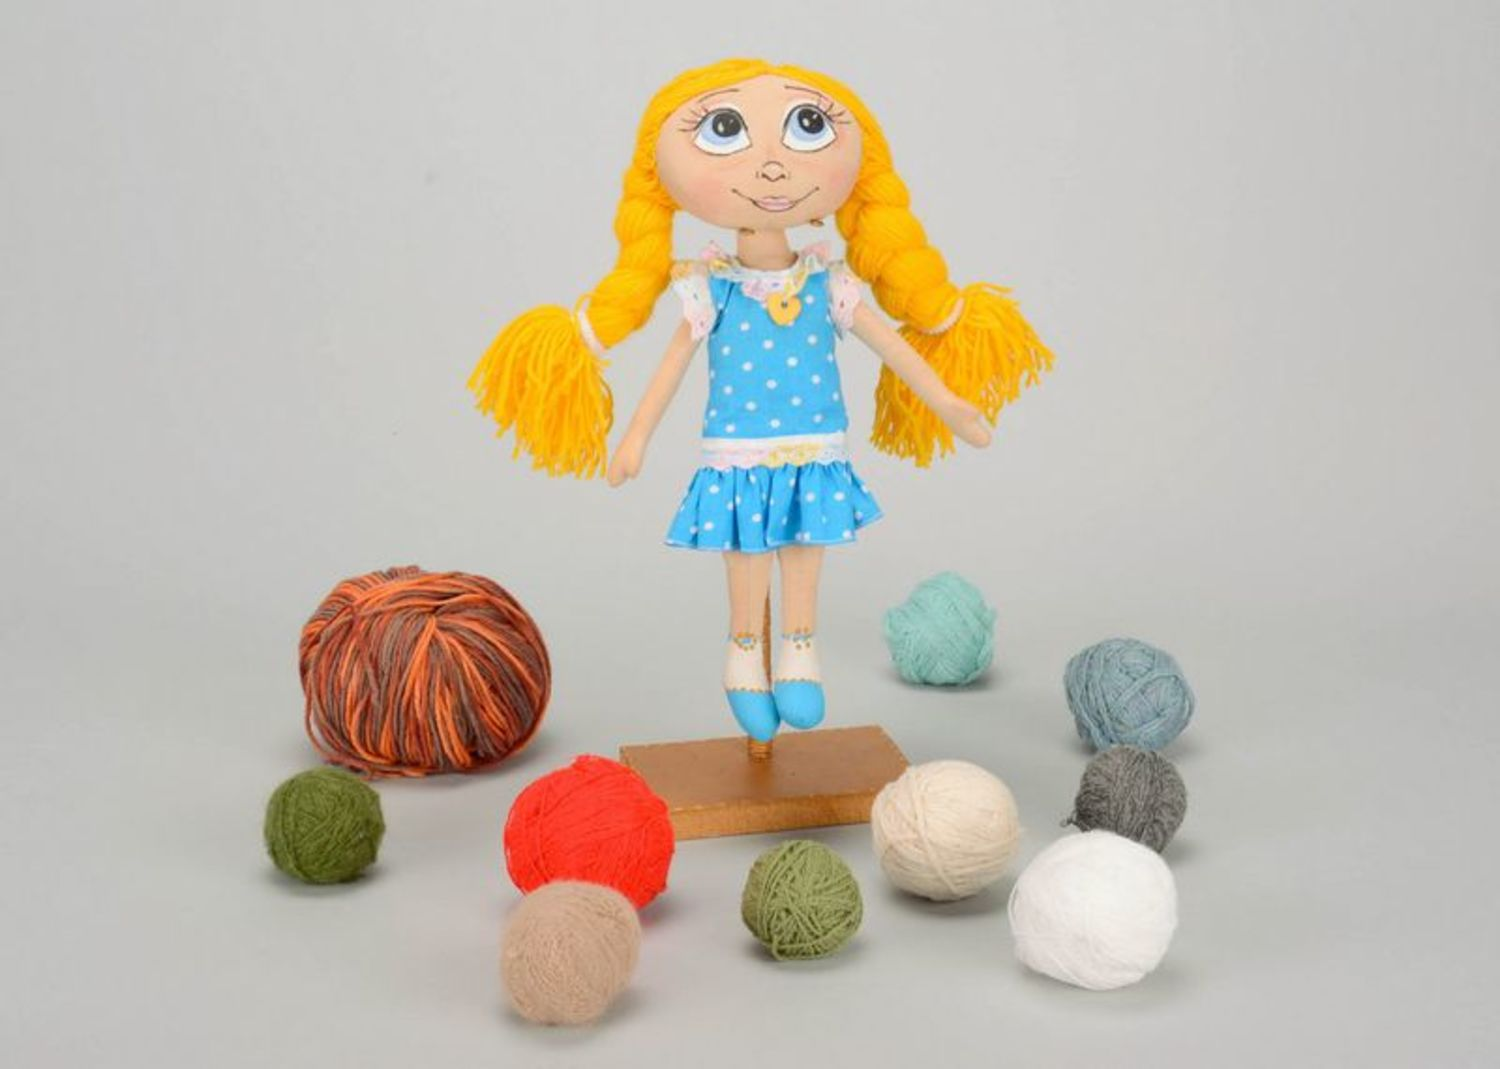 Fragranced doll with yellow braids  photo 1